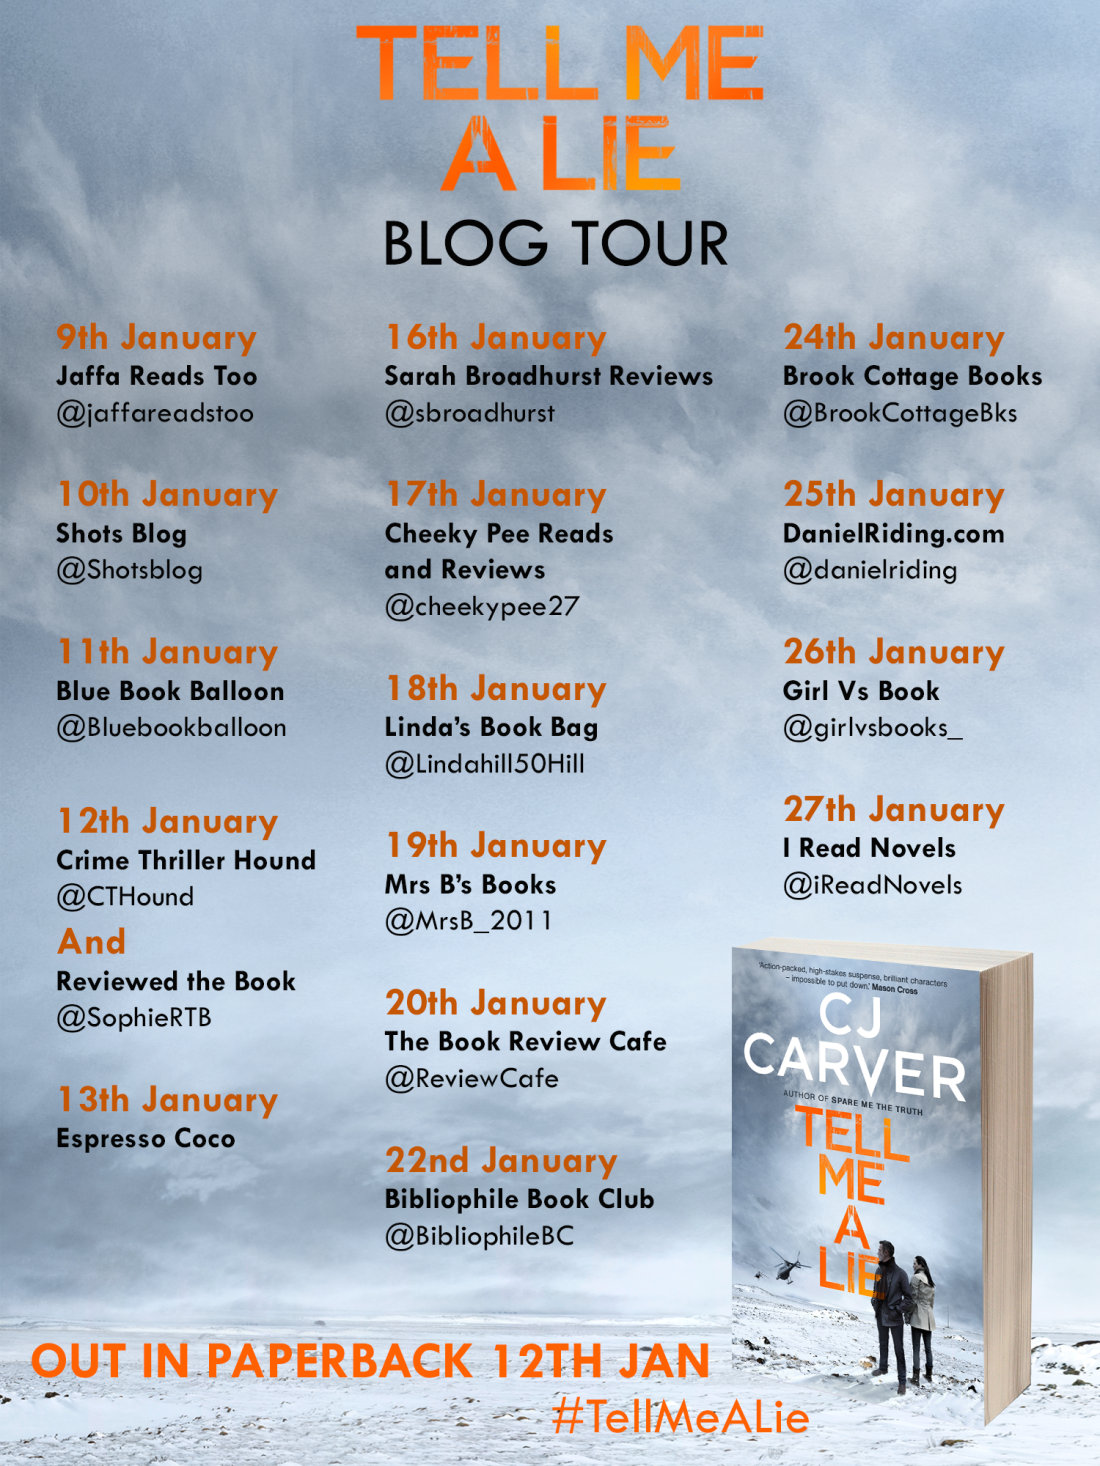 tell-me-a-lie-blog-tour